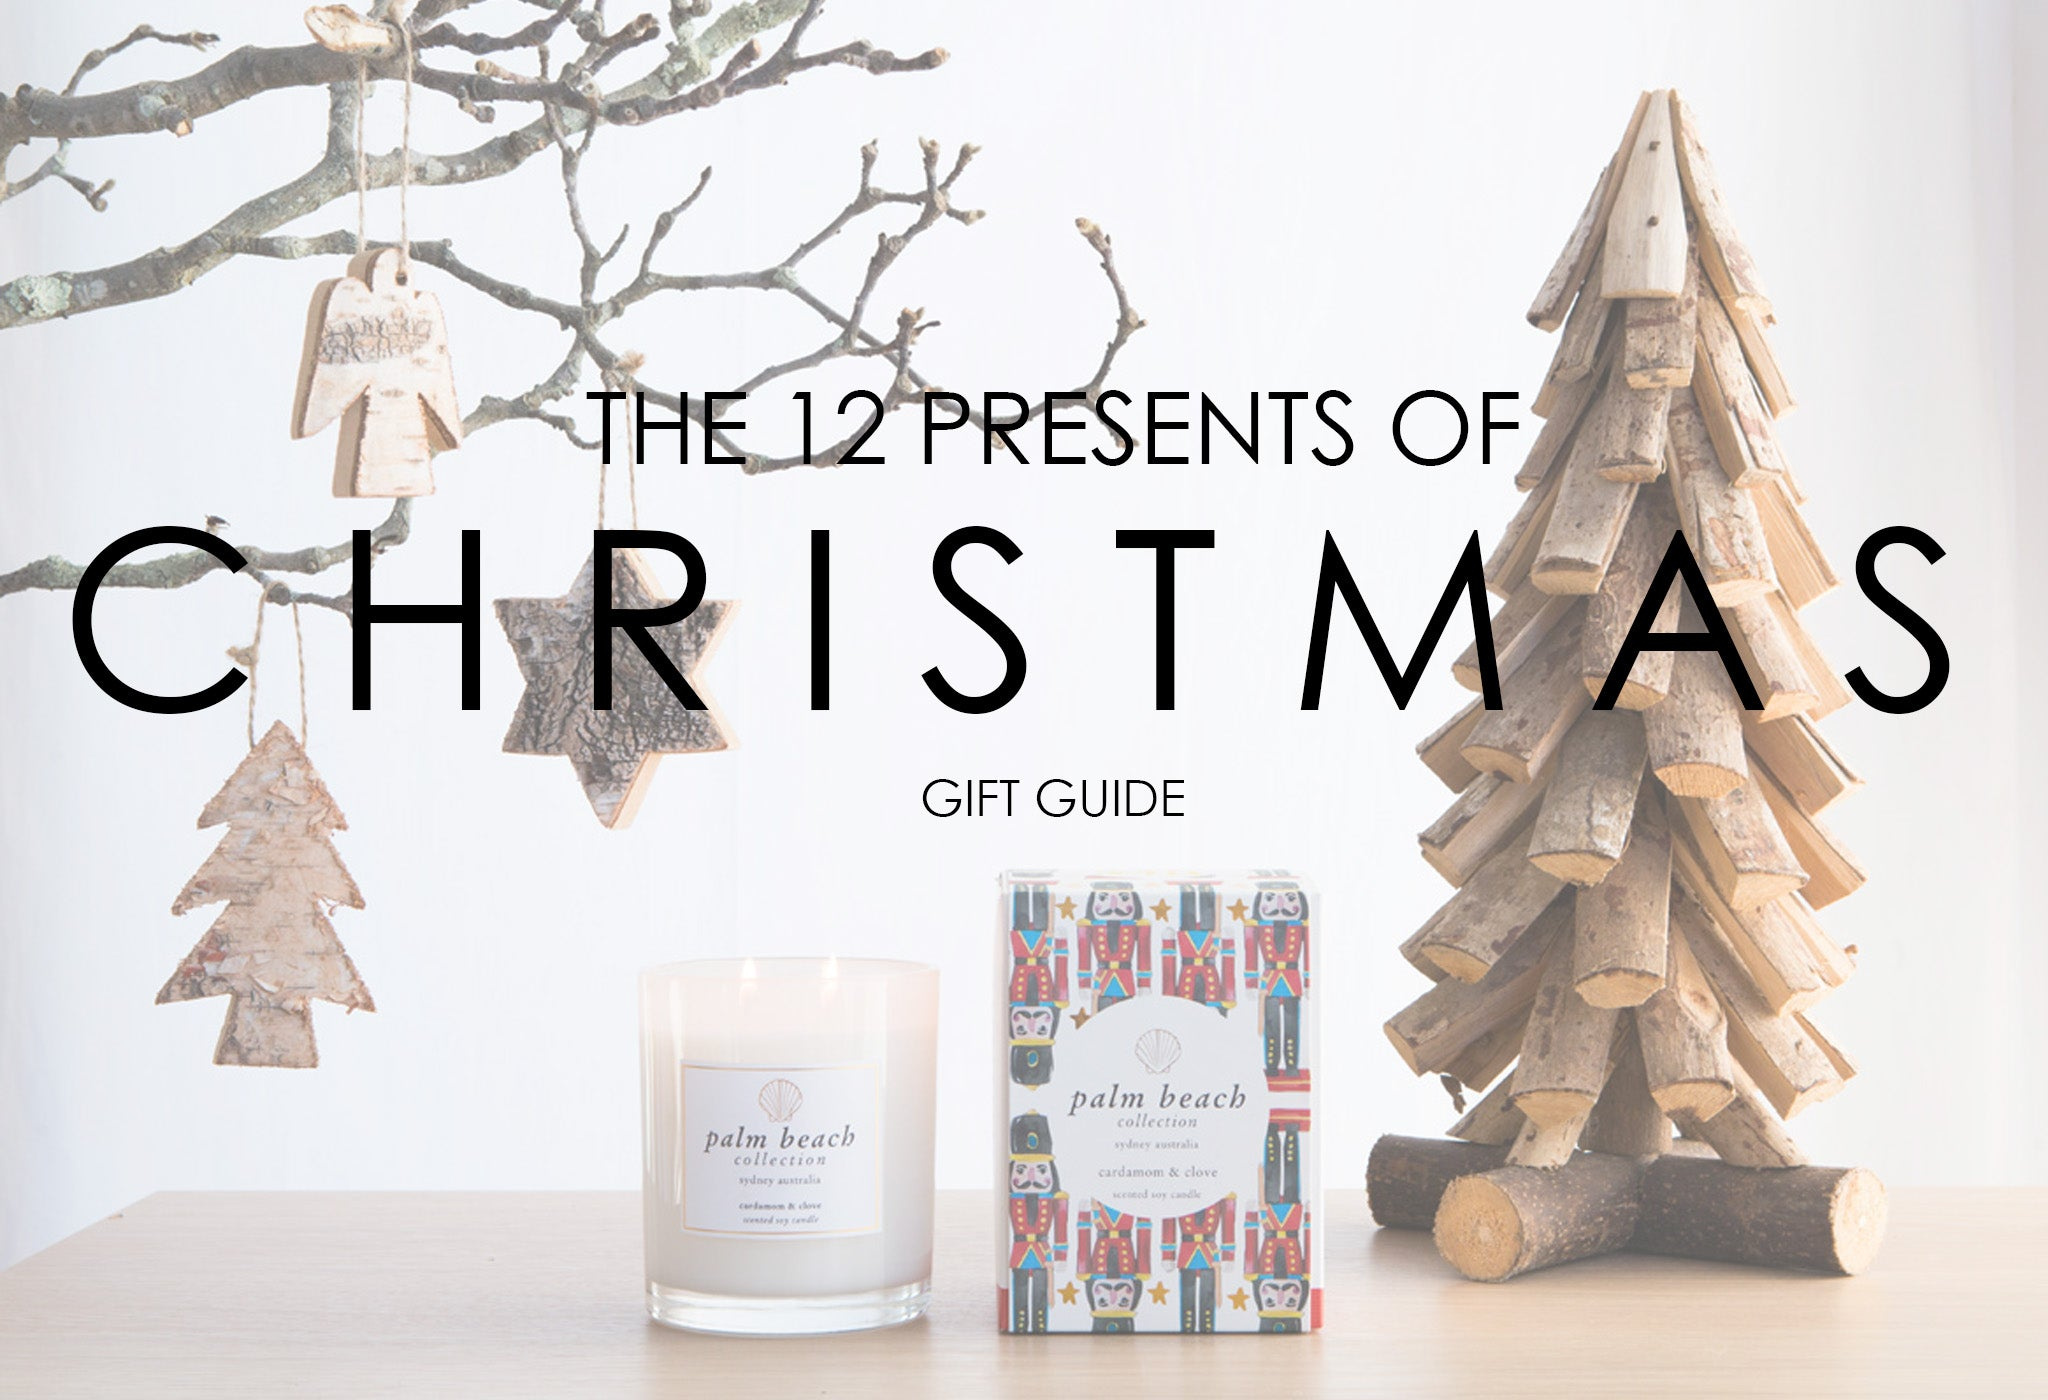 The 12 Presents of Christmas Gift Guide